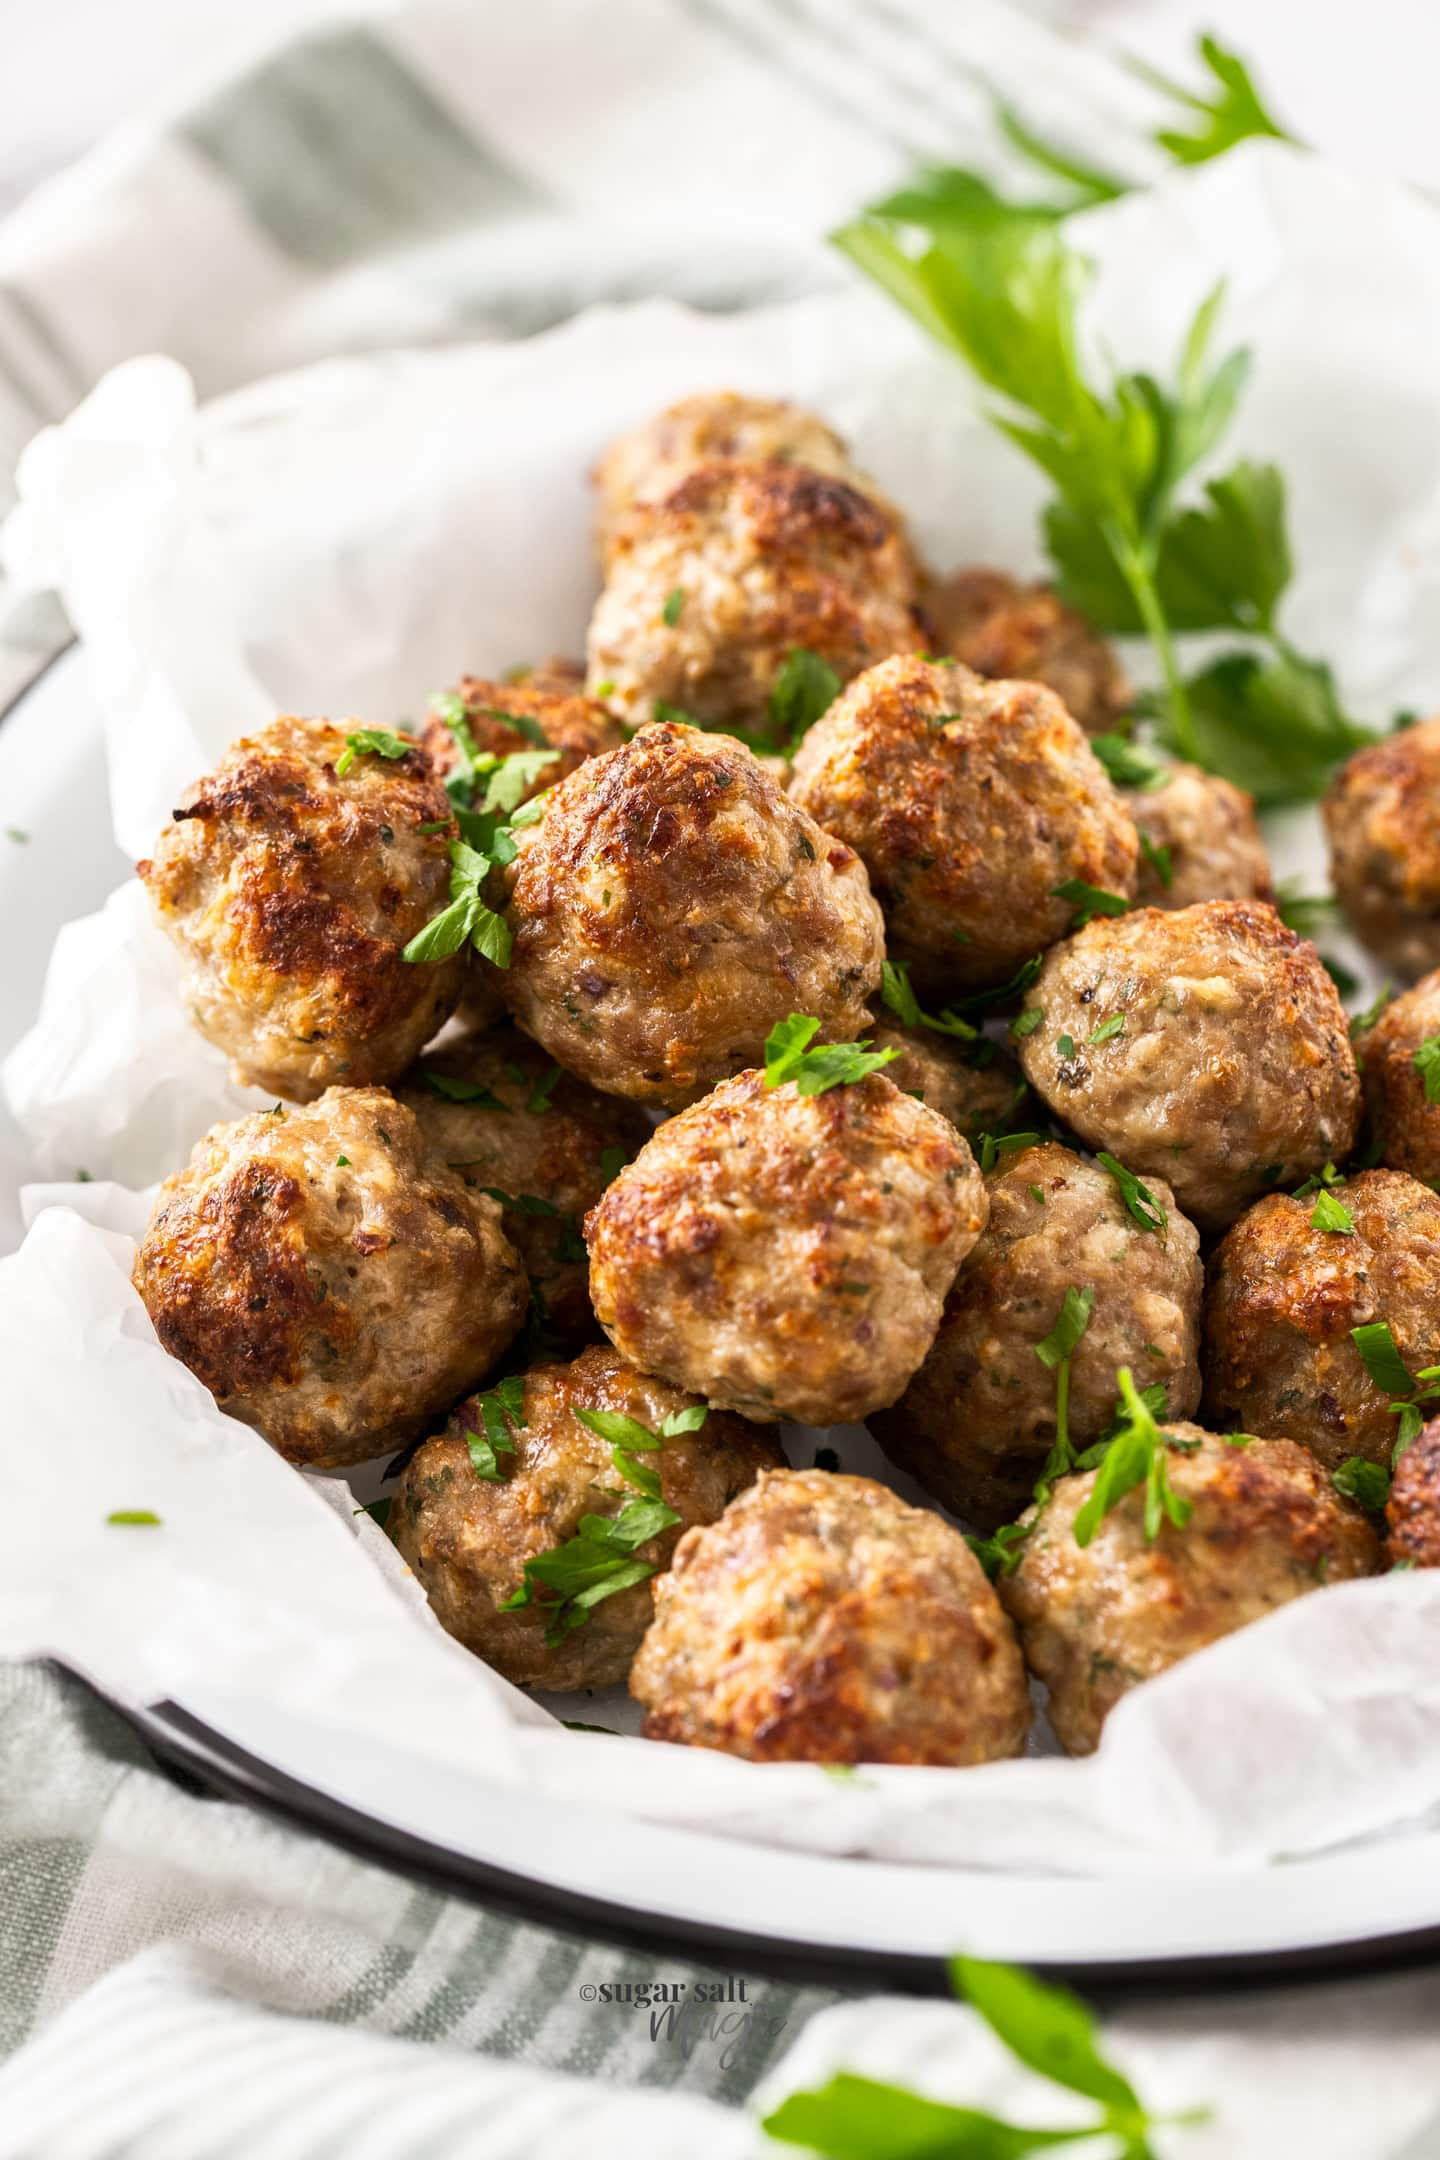 A white dish filled with meatballs.